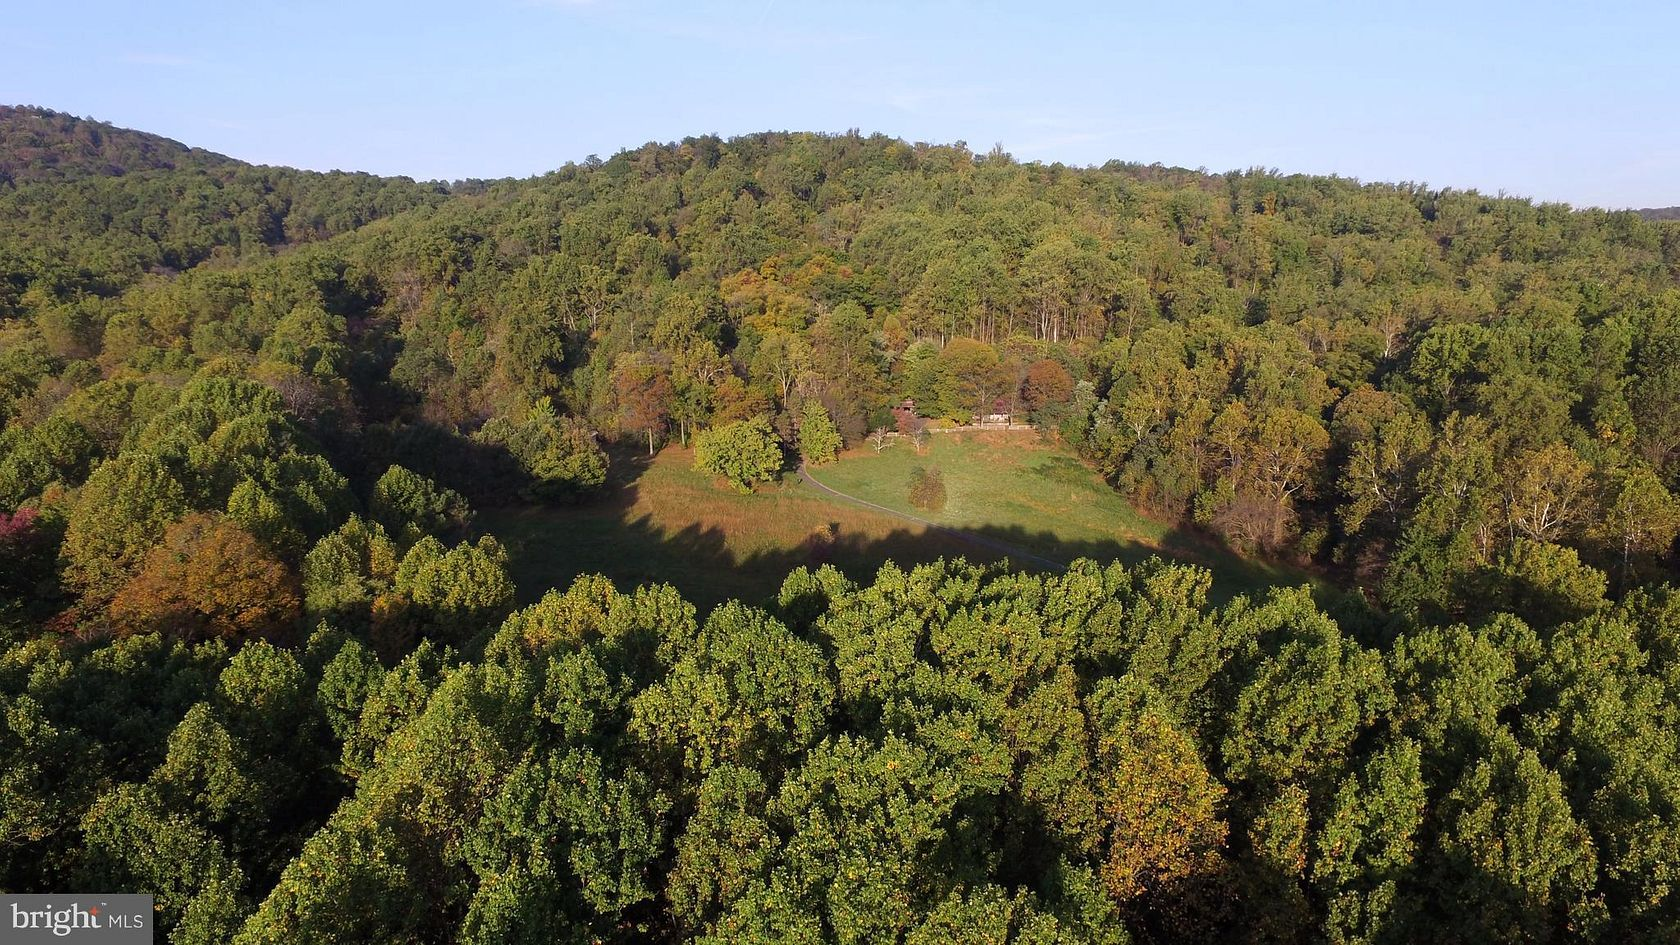 235 Acres of Land for Sale in Markham, Virginia